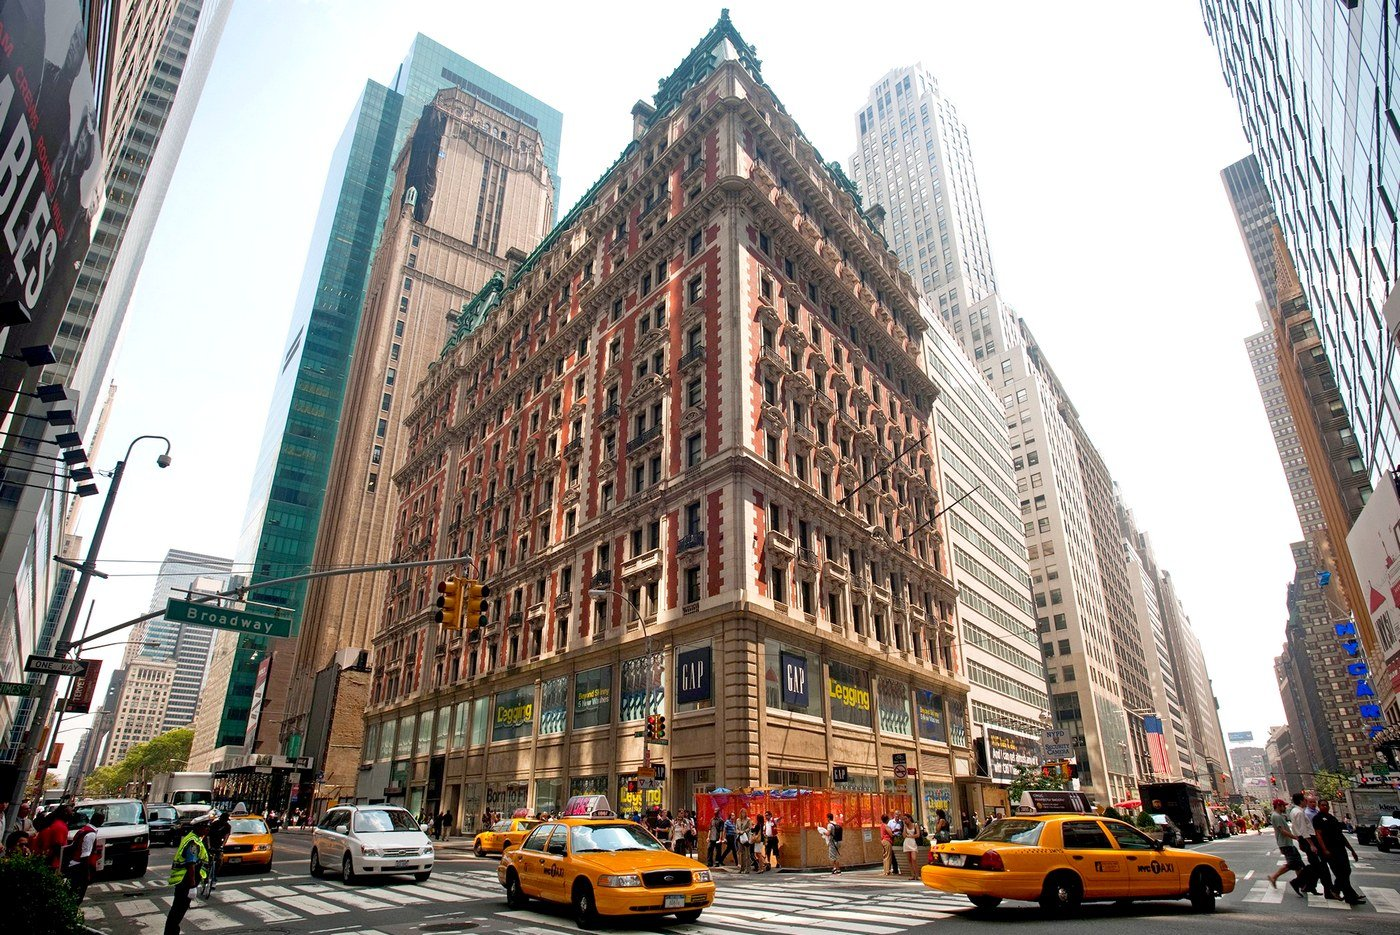 New York Hotel Hotels Free Giveaway